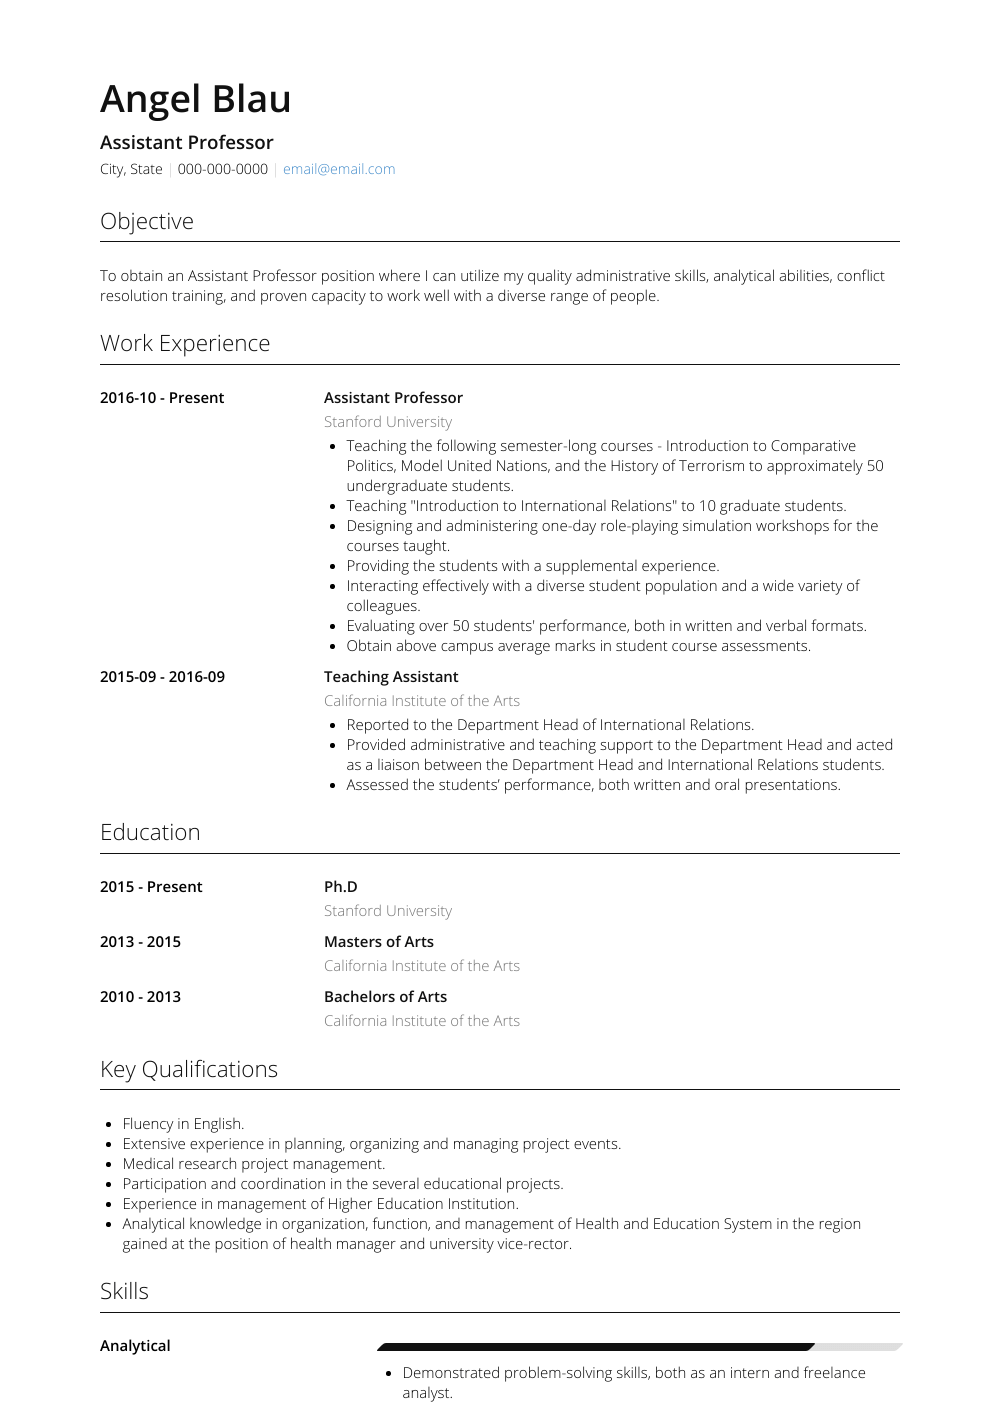 Assistant Professor Resume Sample and Template